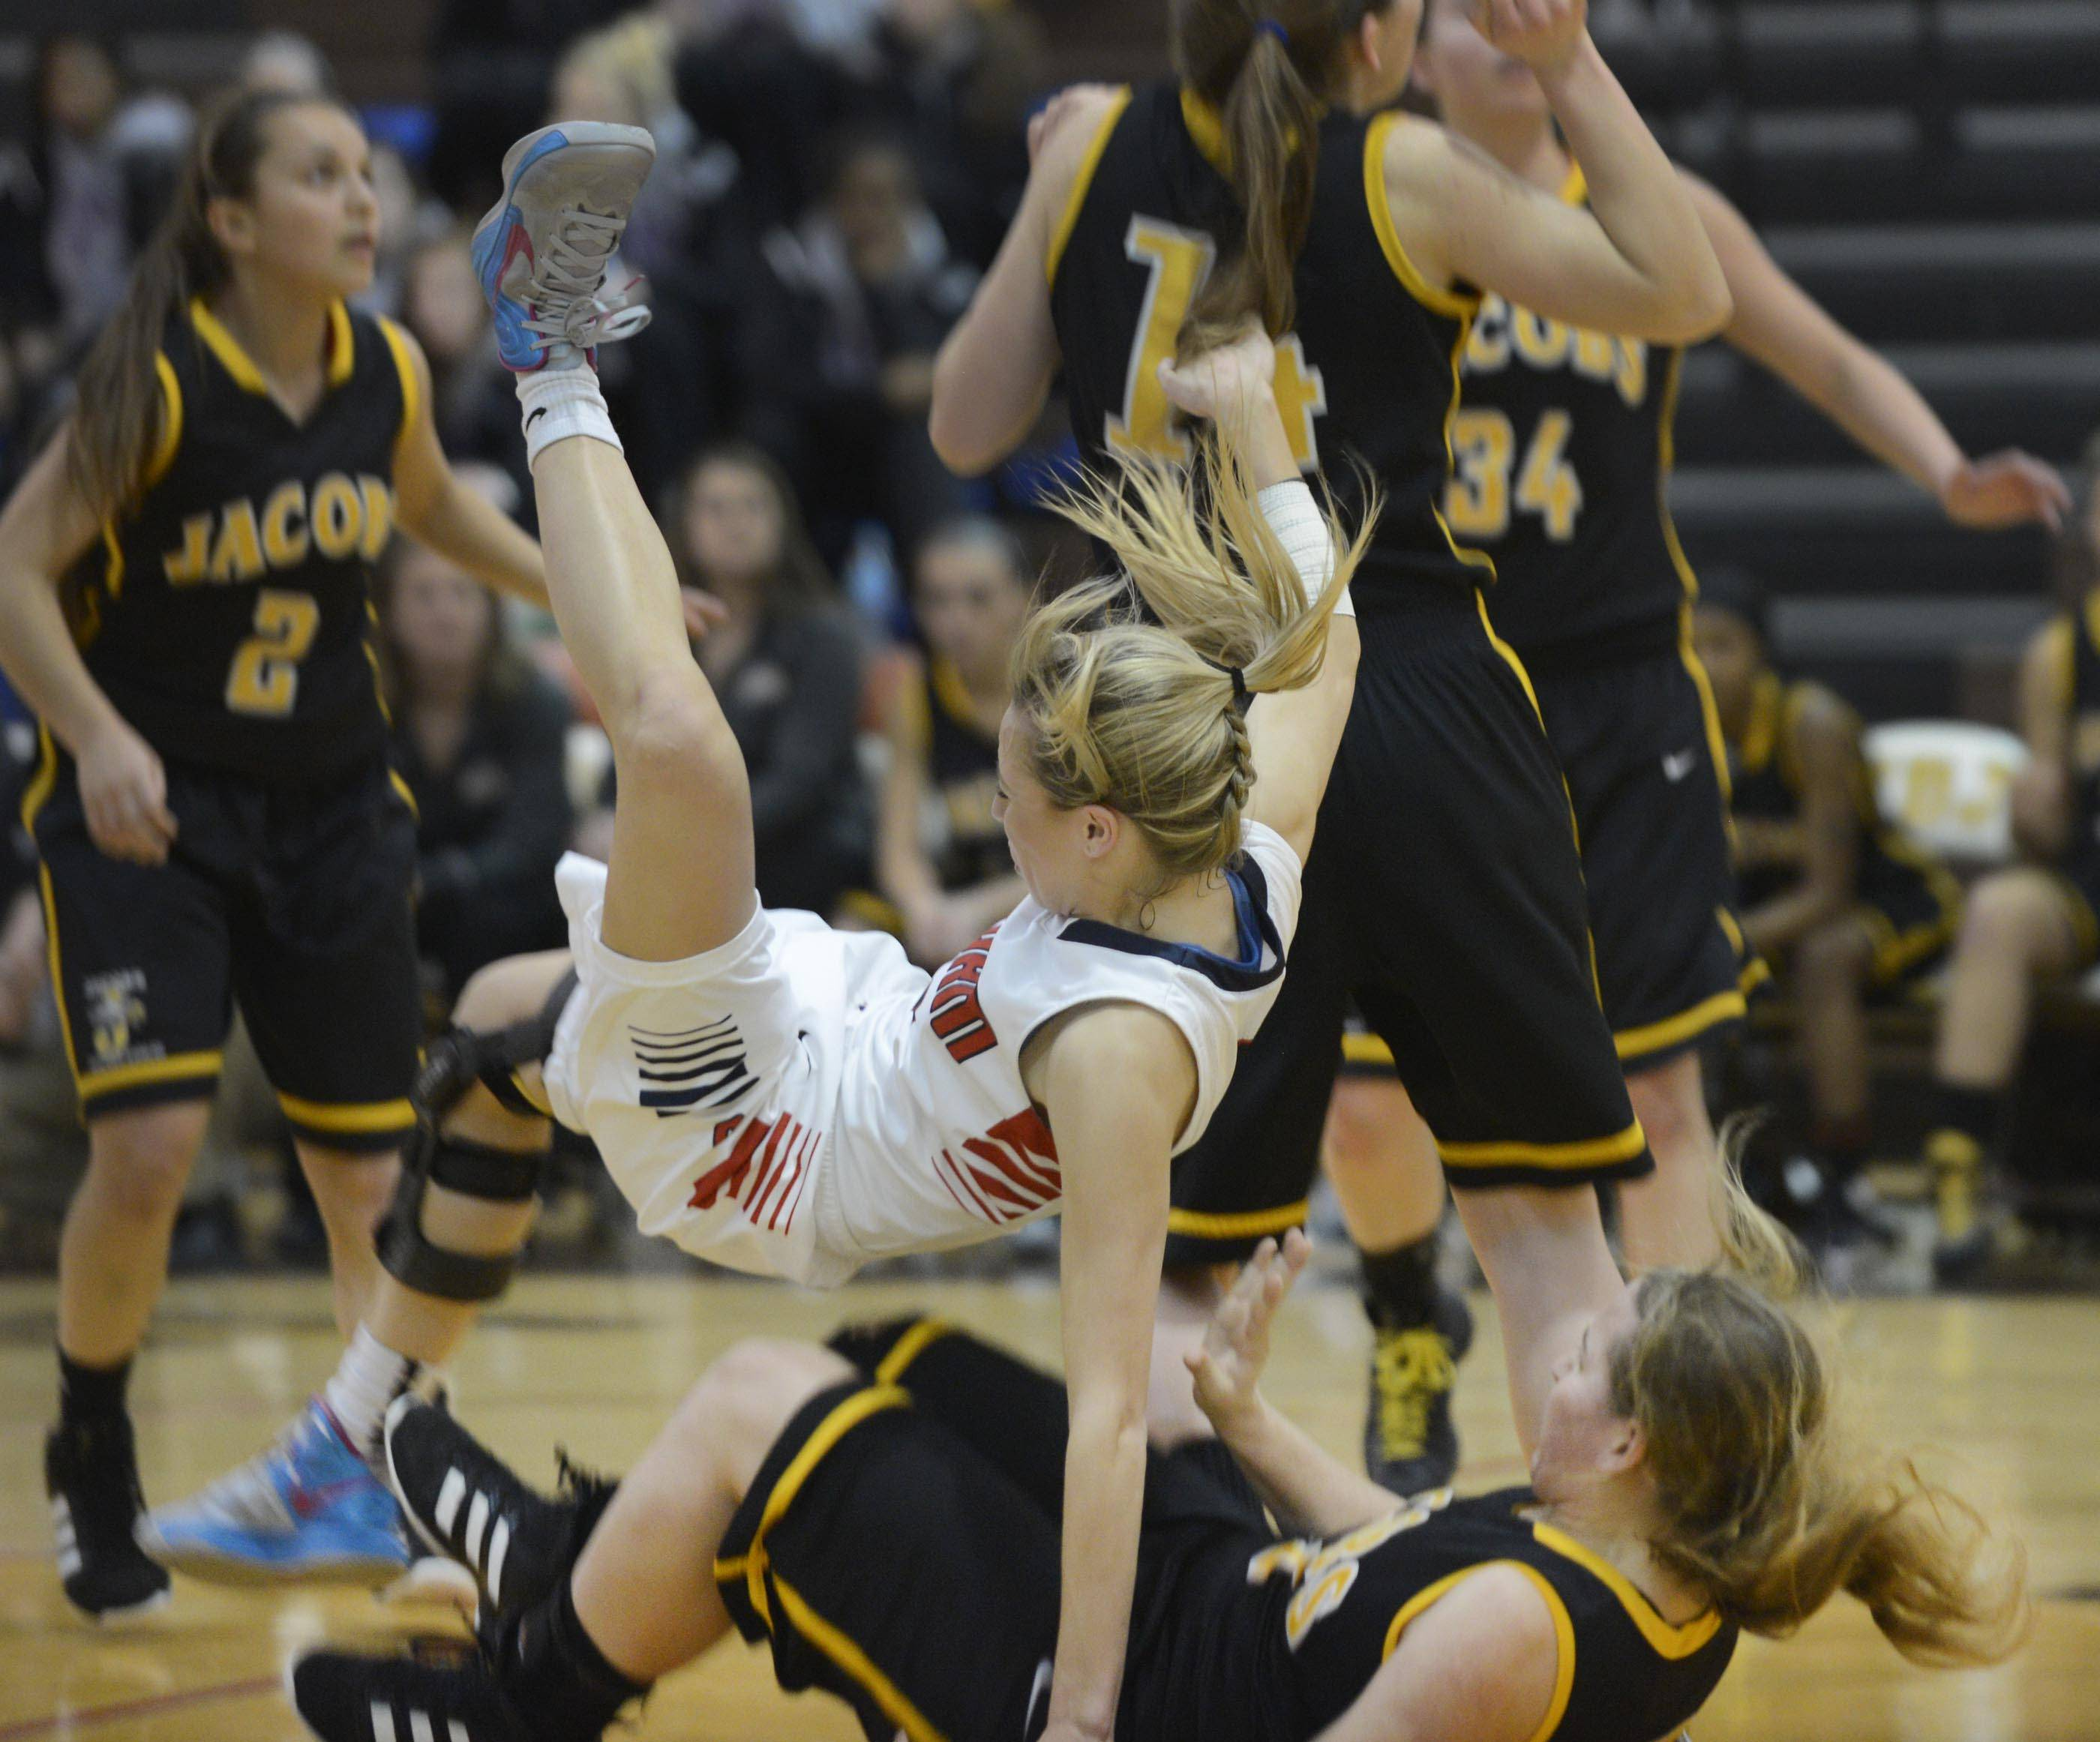 South Elgin's Savanah Uveges falls on Jacobs' Alyssa Lach Tuesday in a regional semifinal game in Algonquin. Neither player was injured.